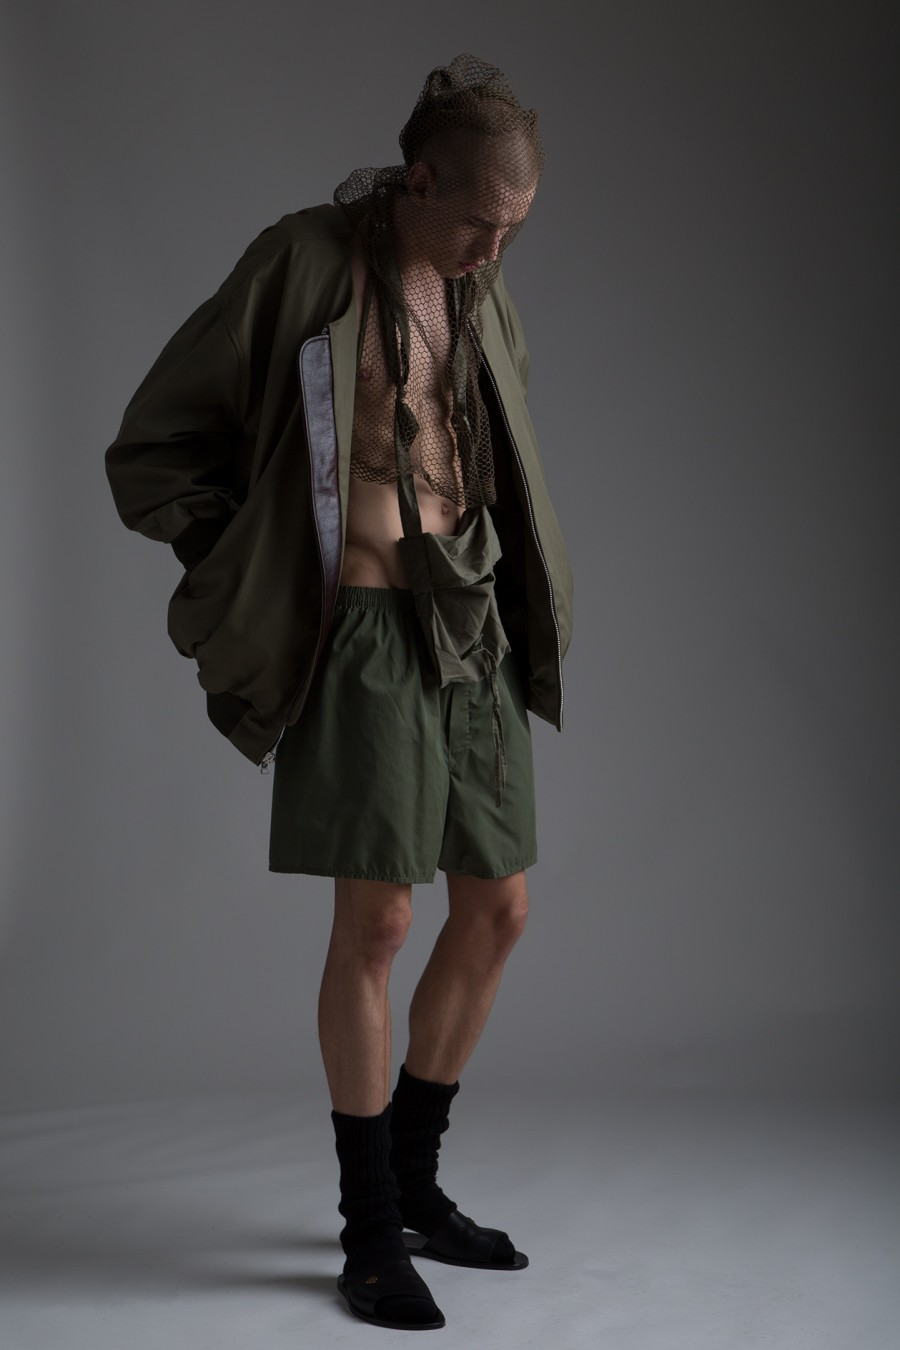 Hed Mayner Oversized Bomber, Military Surplus Shorts and Bag